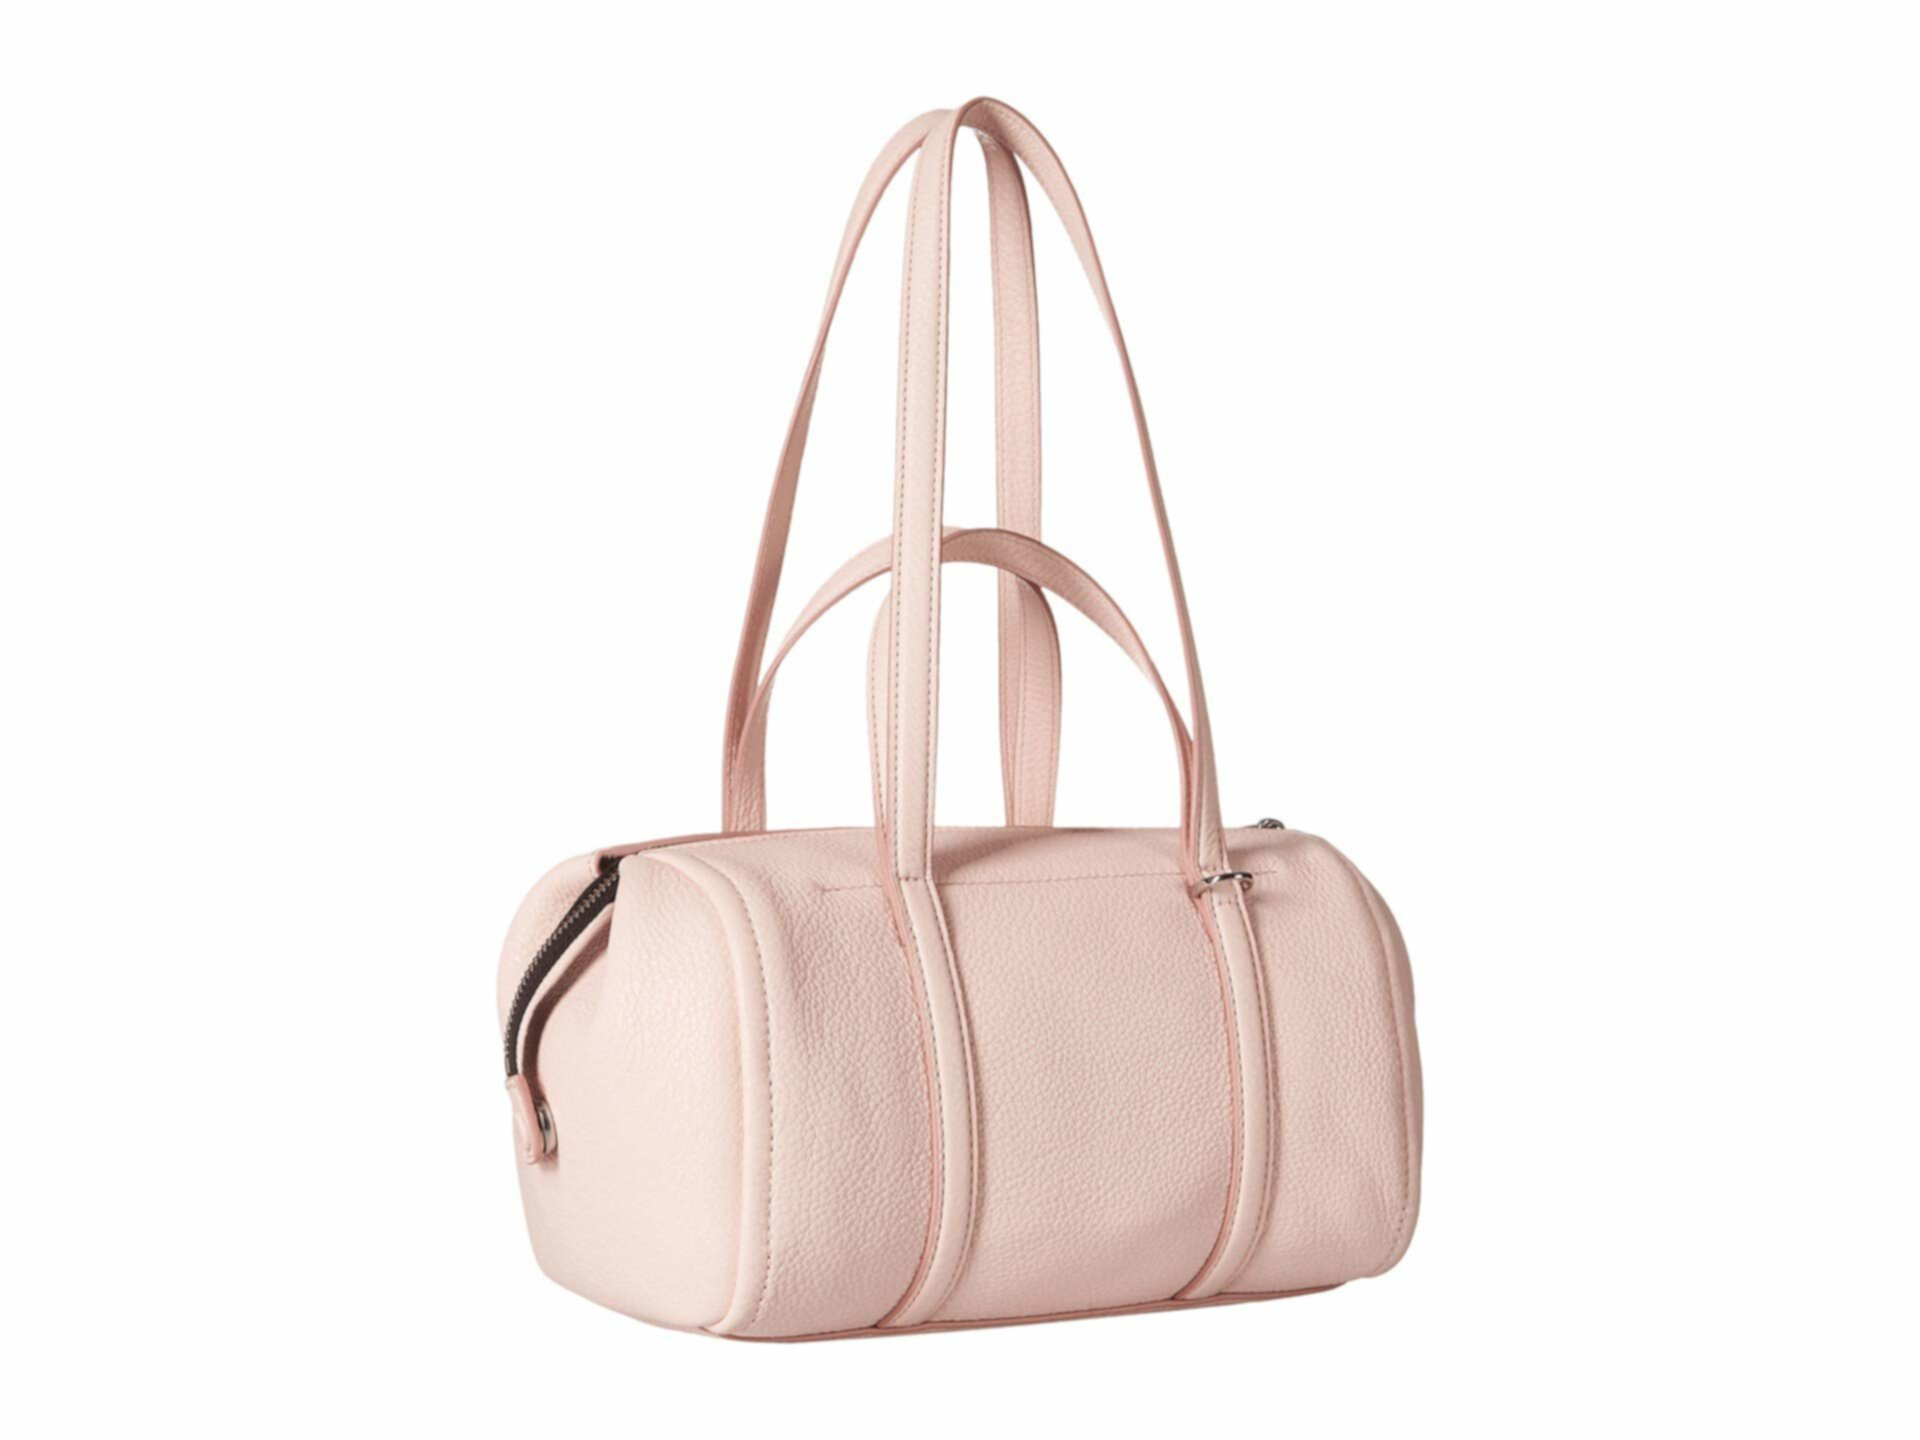 Tag Bauletto 26 Marc Jacobs